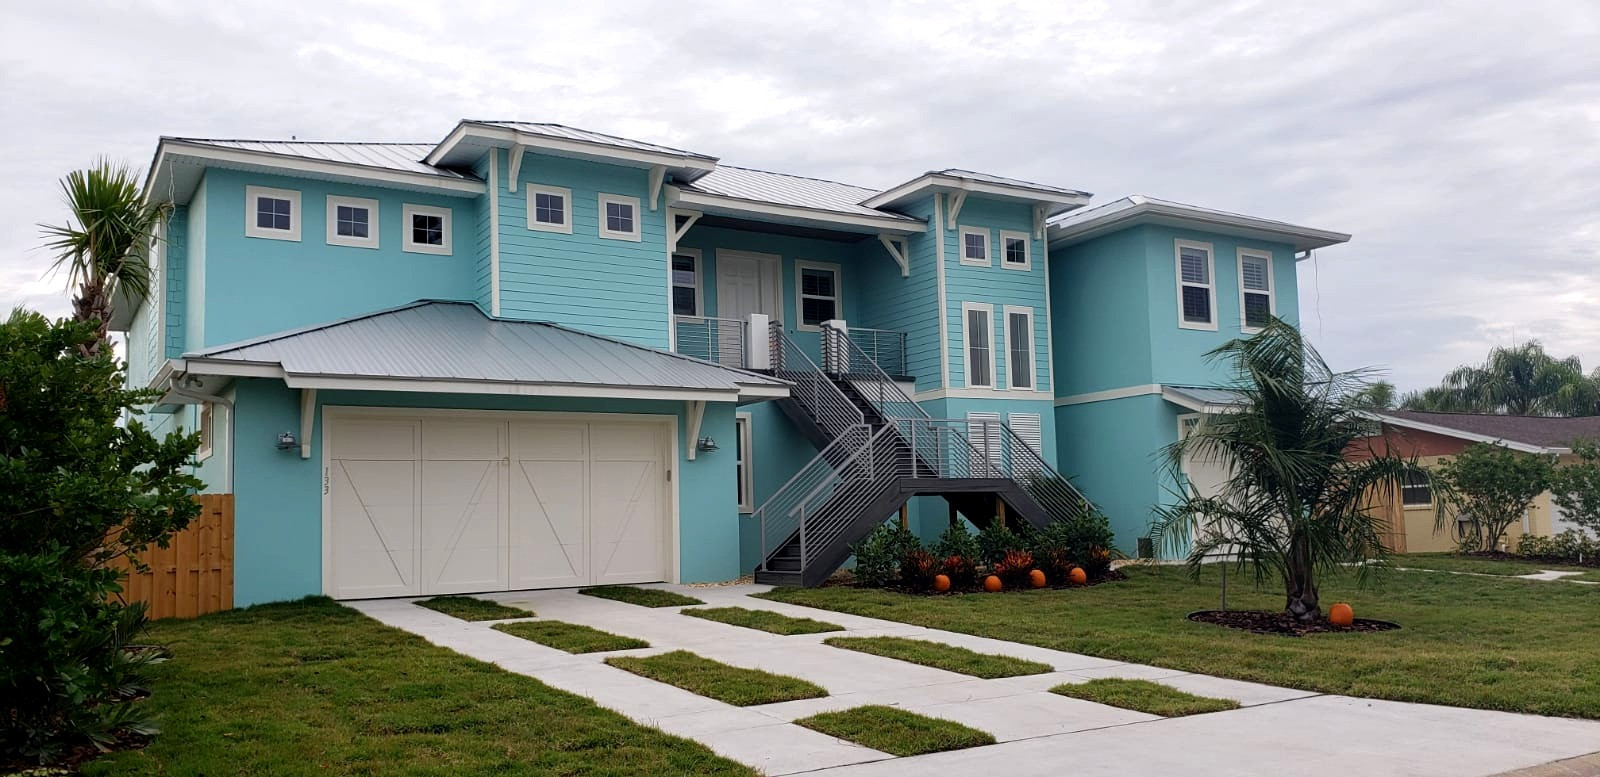 RESIDENTIAL EXTERIOR PAINTING AT NEW SMYRNA